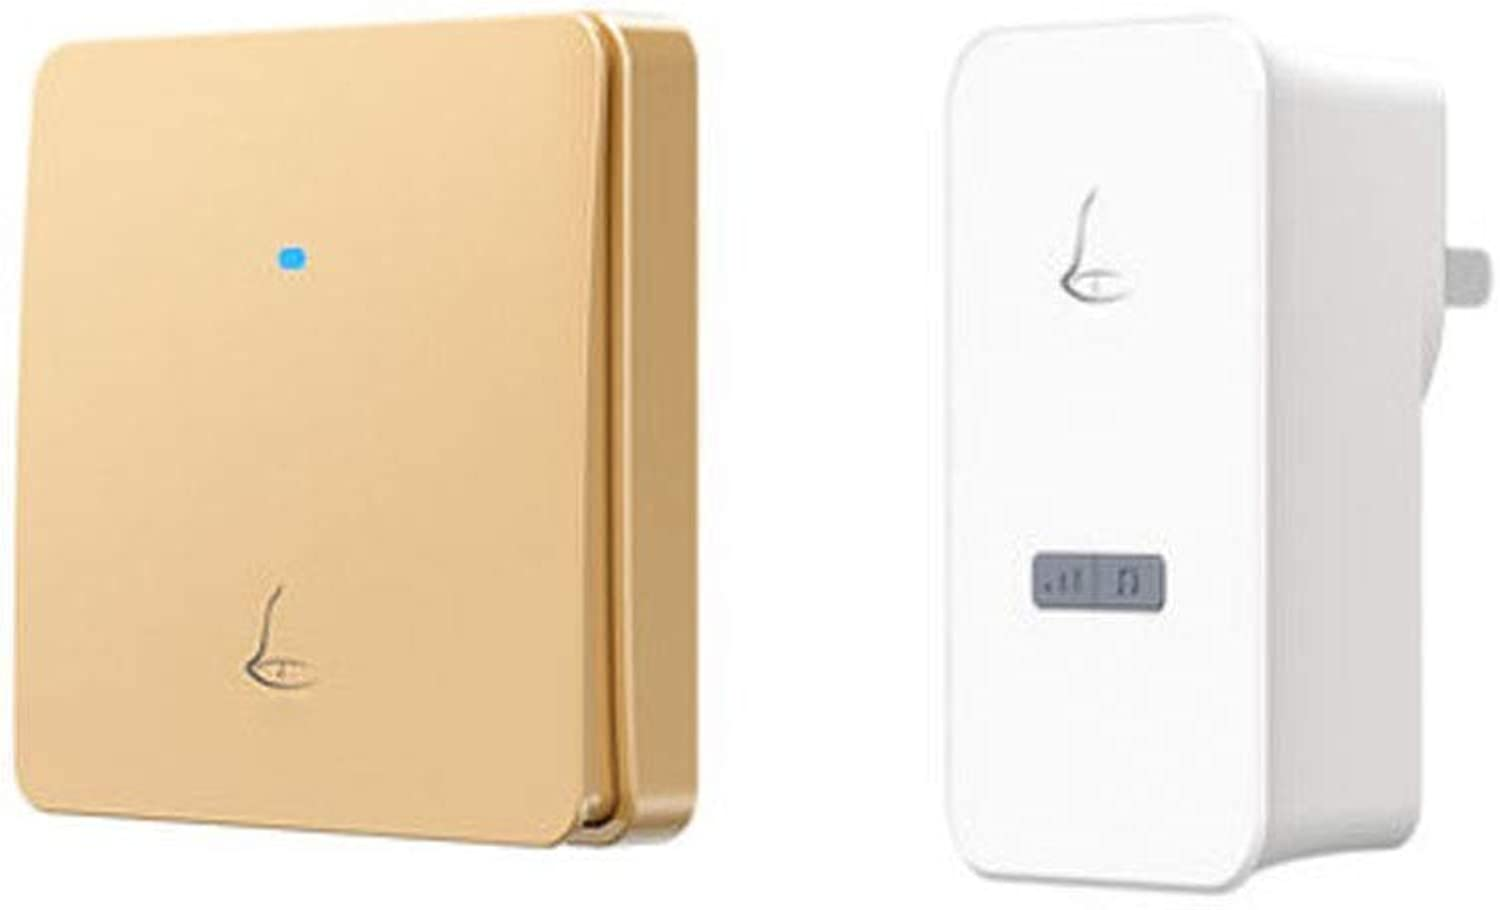 Doorbell, Wireless Selfgenerated Electricity, Comfortable PushType Doorbell, Waterproof (White, gold) (color   gold)